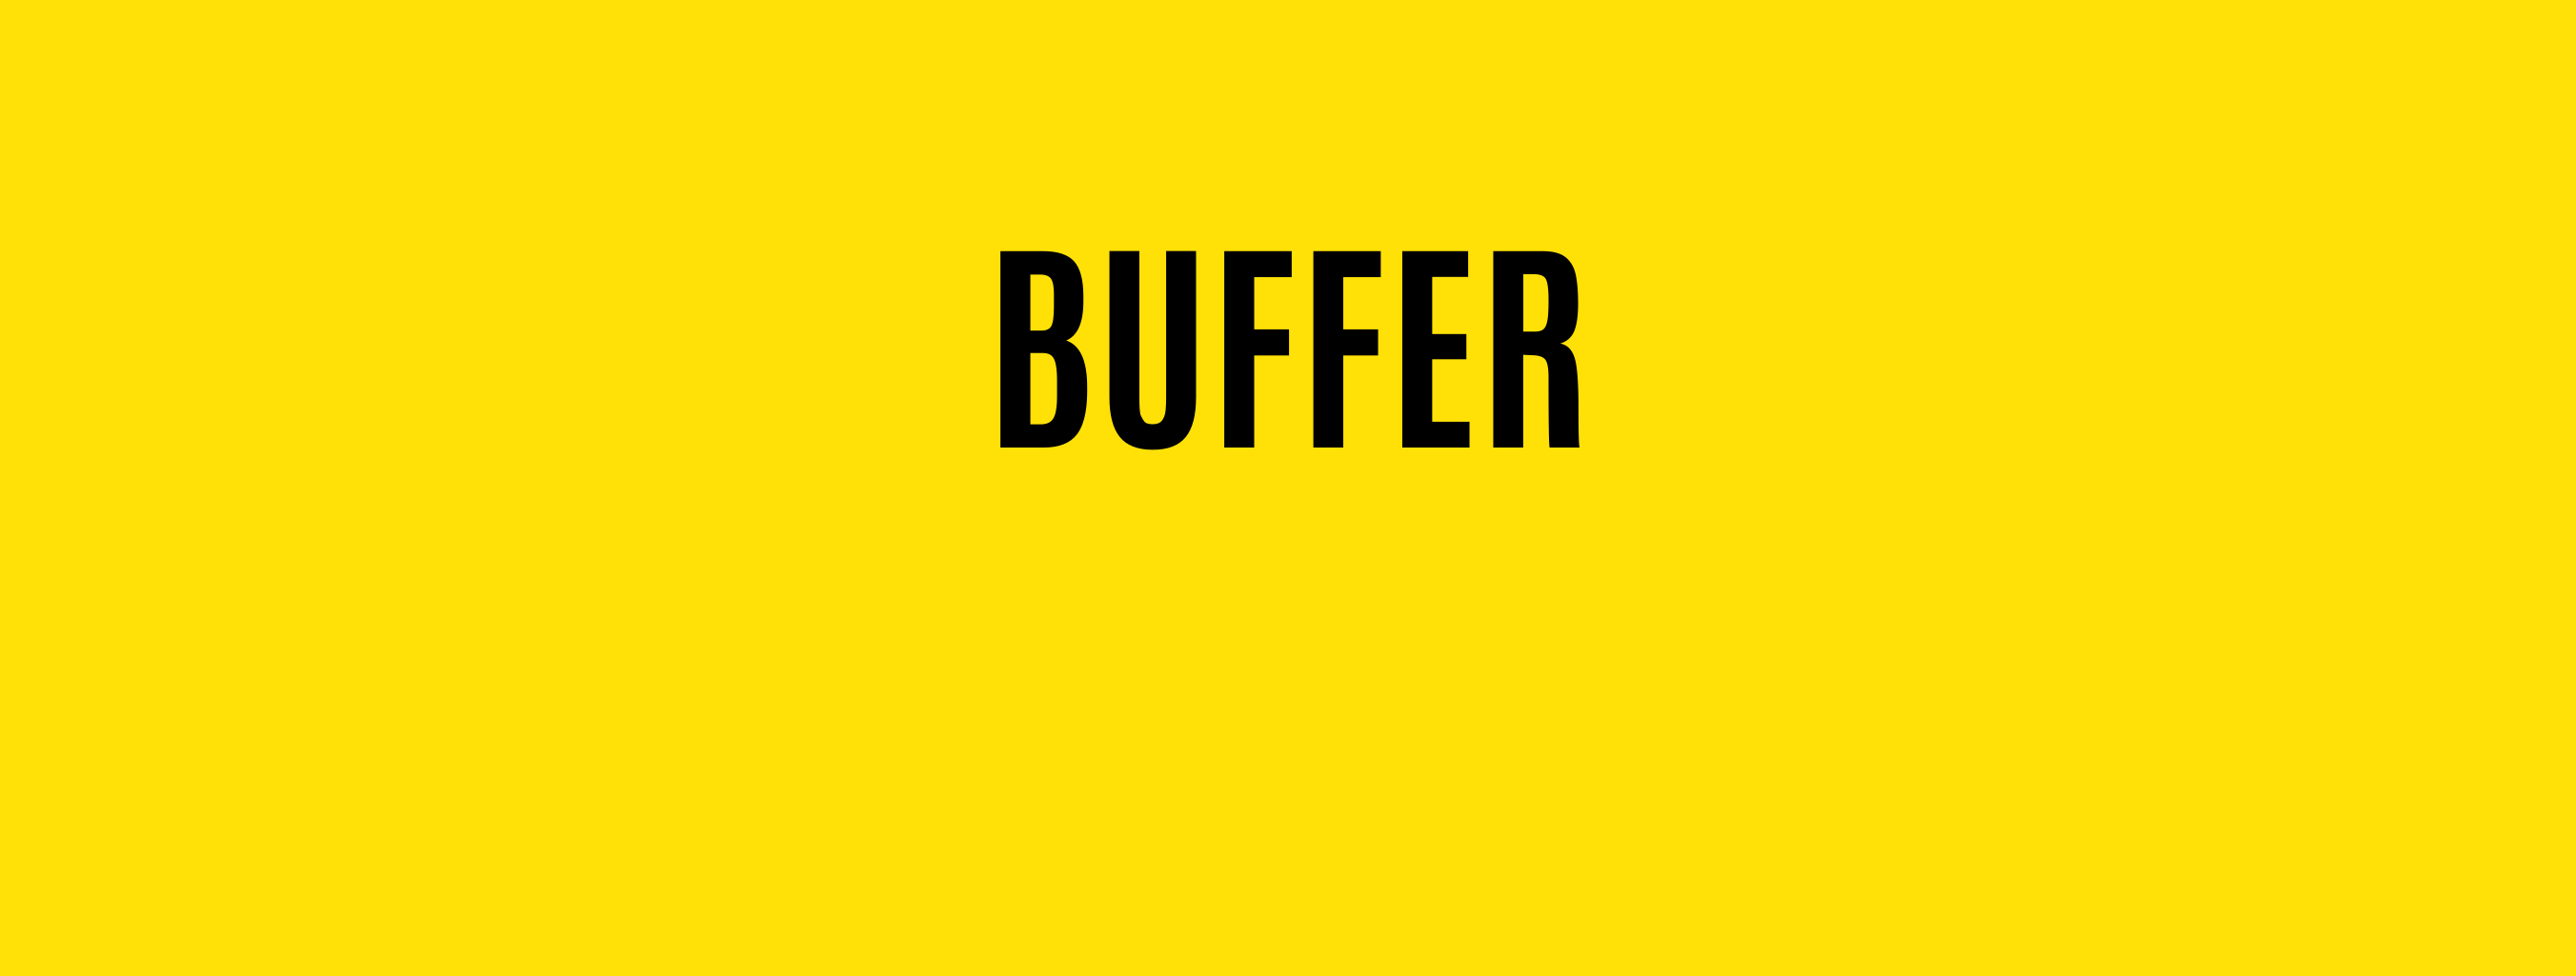 Usource Buffer social media manager and specialists